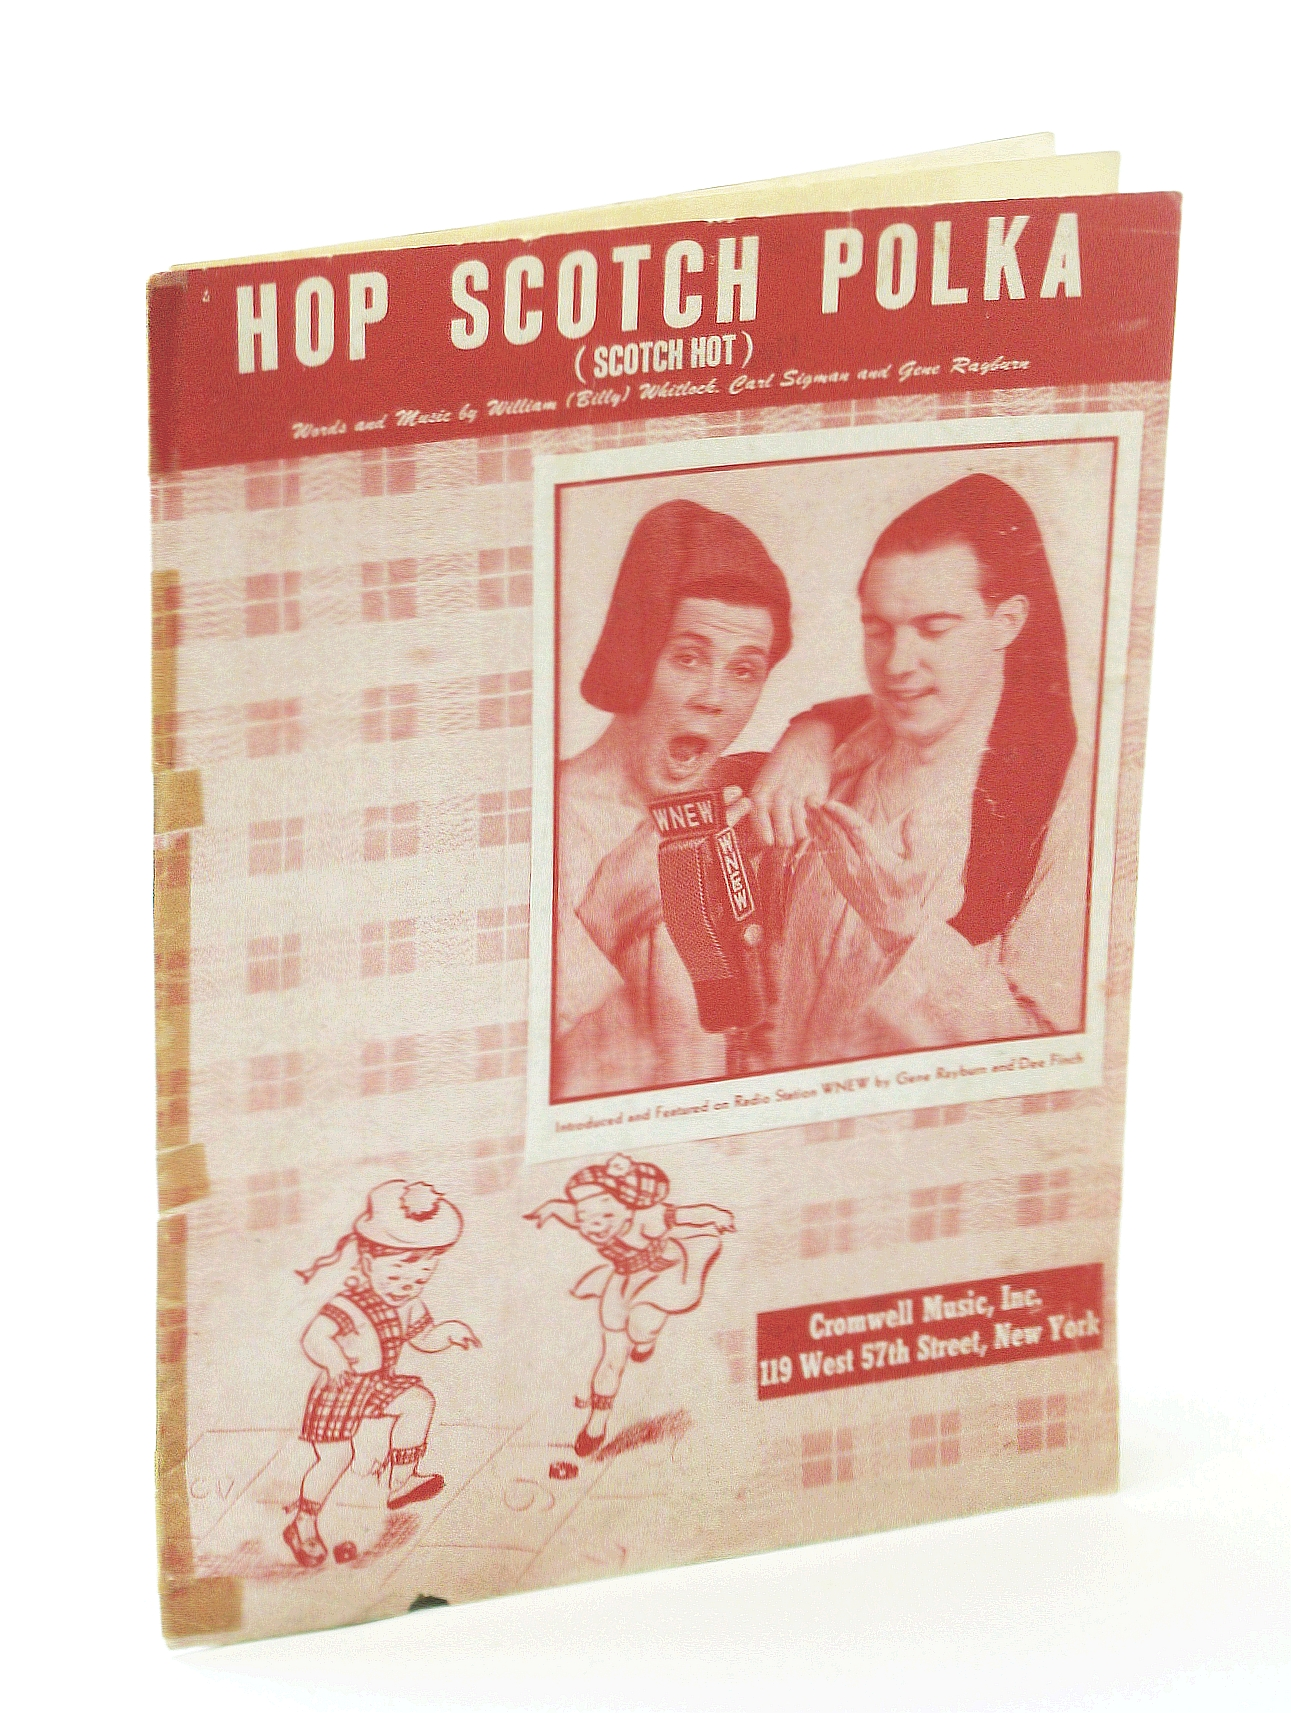 Image for HOP SCOTCH POLKA (Scotch Hot). Words and music by William (Billy) Whitlock, Carl Sigman and Gene Rayburn.